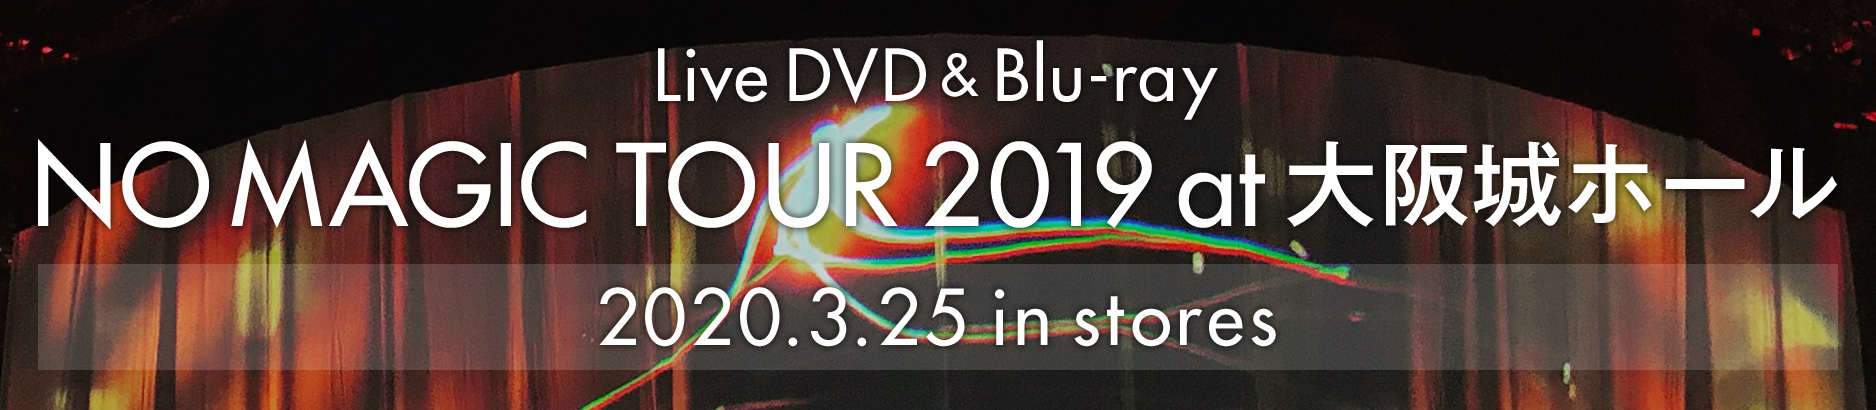 NO MAGIC TOUR_DVD&Blu-ray